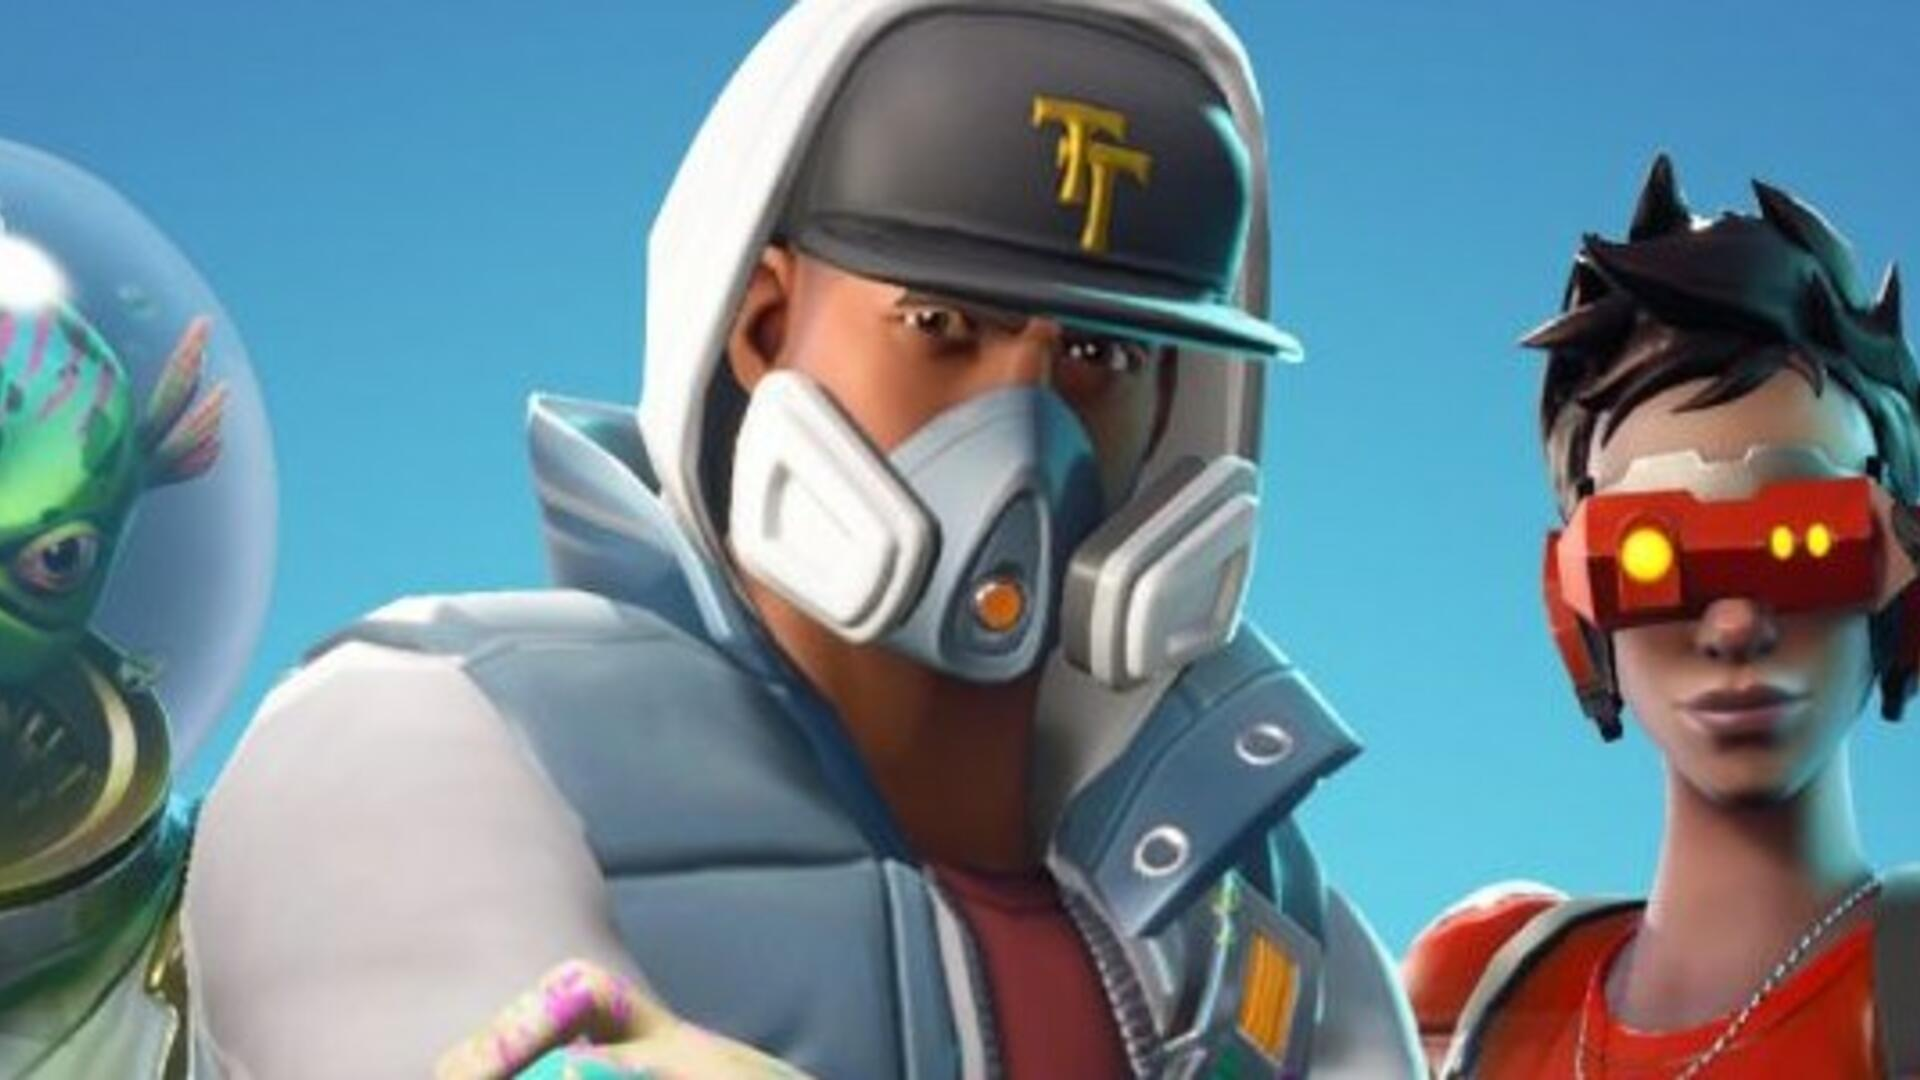 Fortnite Double XP Weekend Is Live Now Making It a Great Time to Get Those Skins